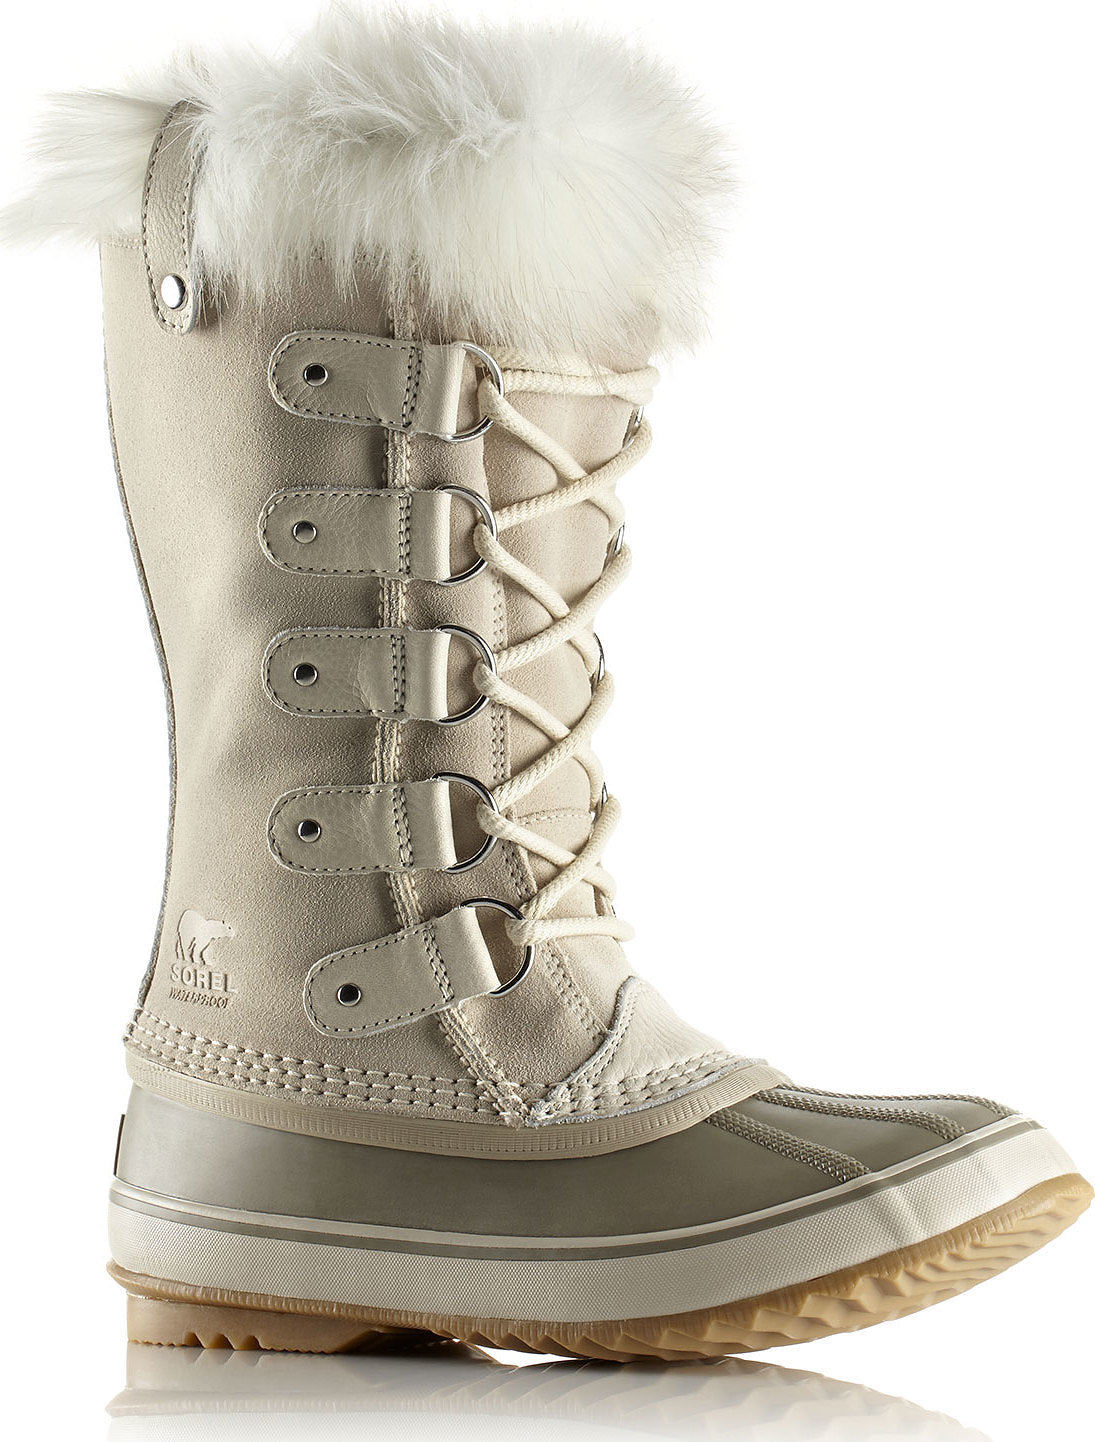 Sorel Joan of Arctic Winter Boots - Women's